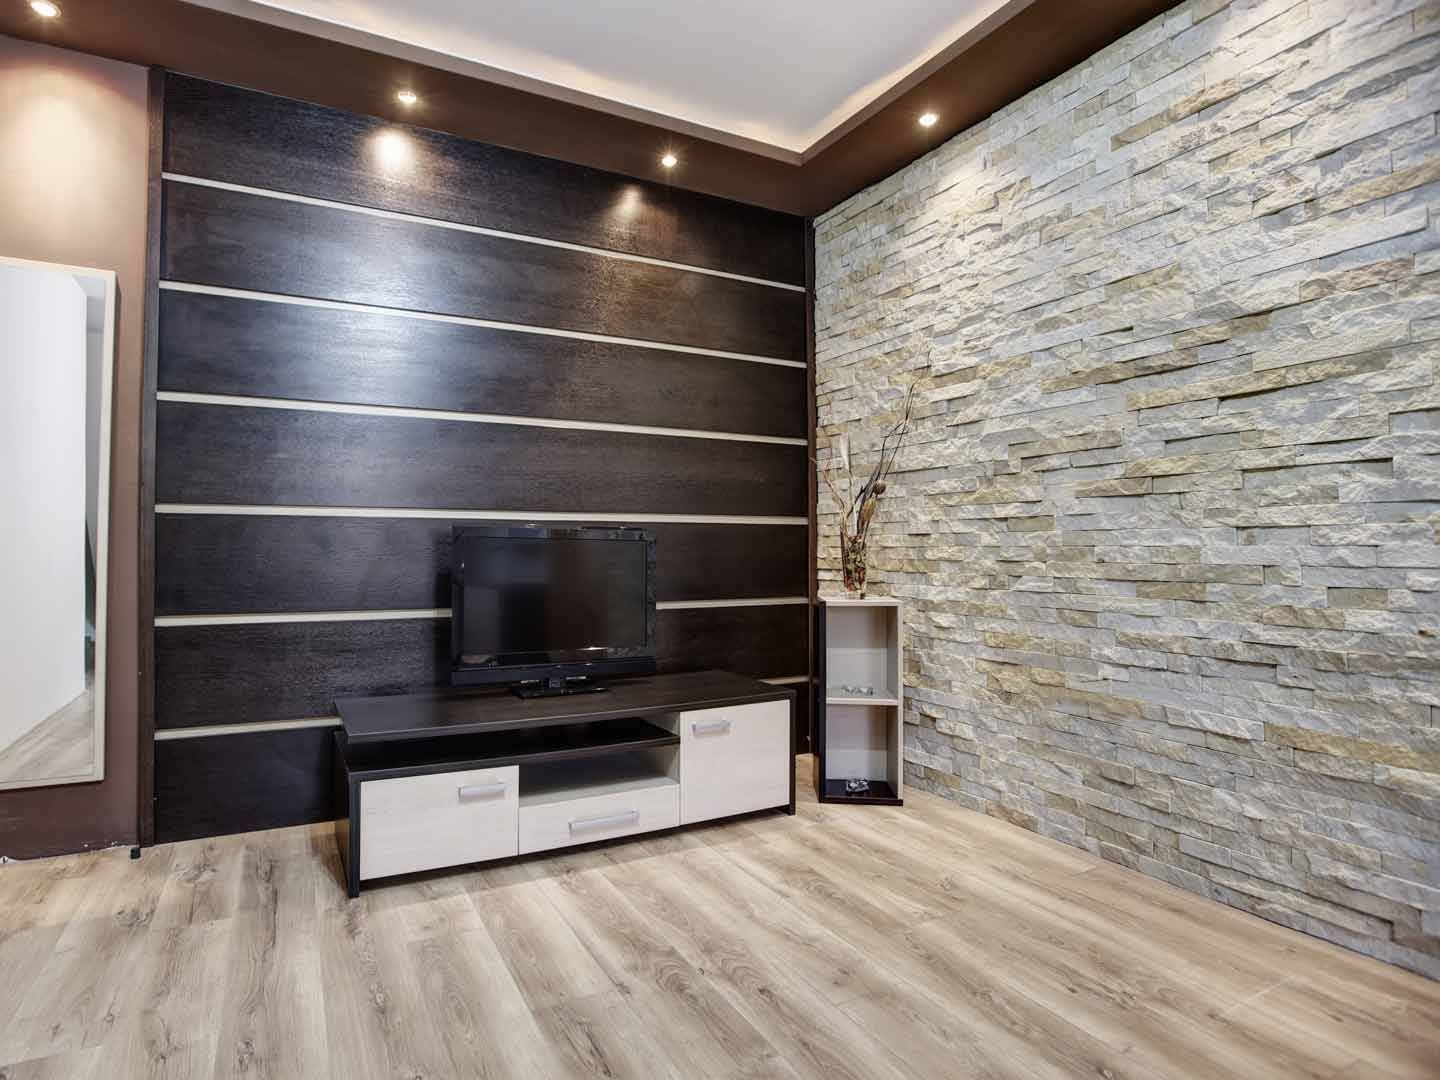 Wall Paneling | 3d Wall Panels | Decorative Wall Panels | Textured With Regard To Best And Newest 3d Wall Covering Panels (View 4 of 20)